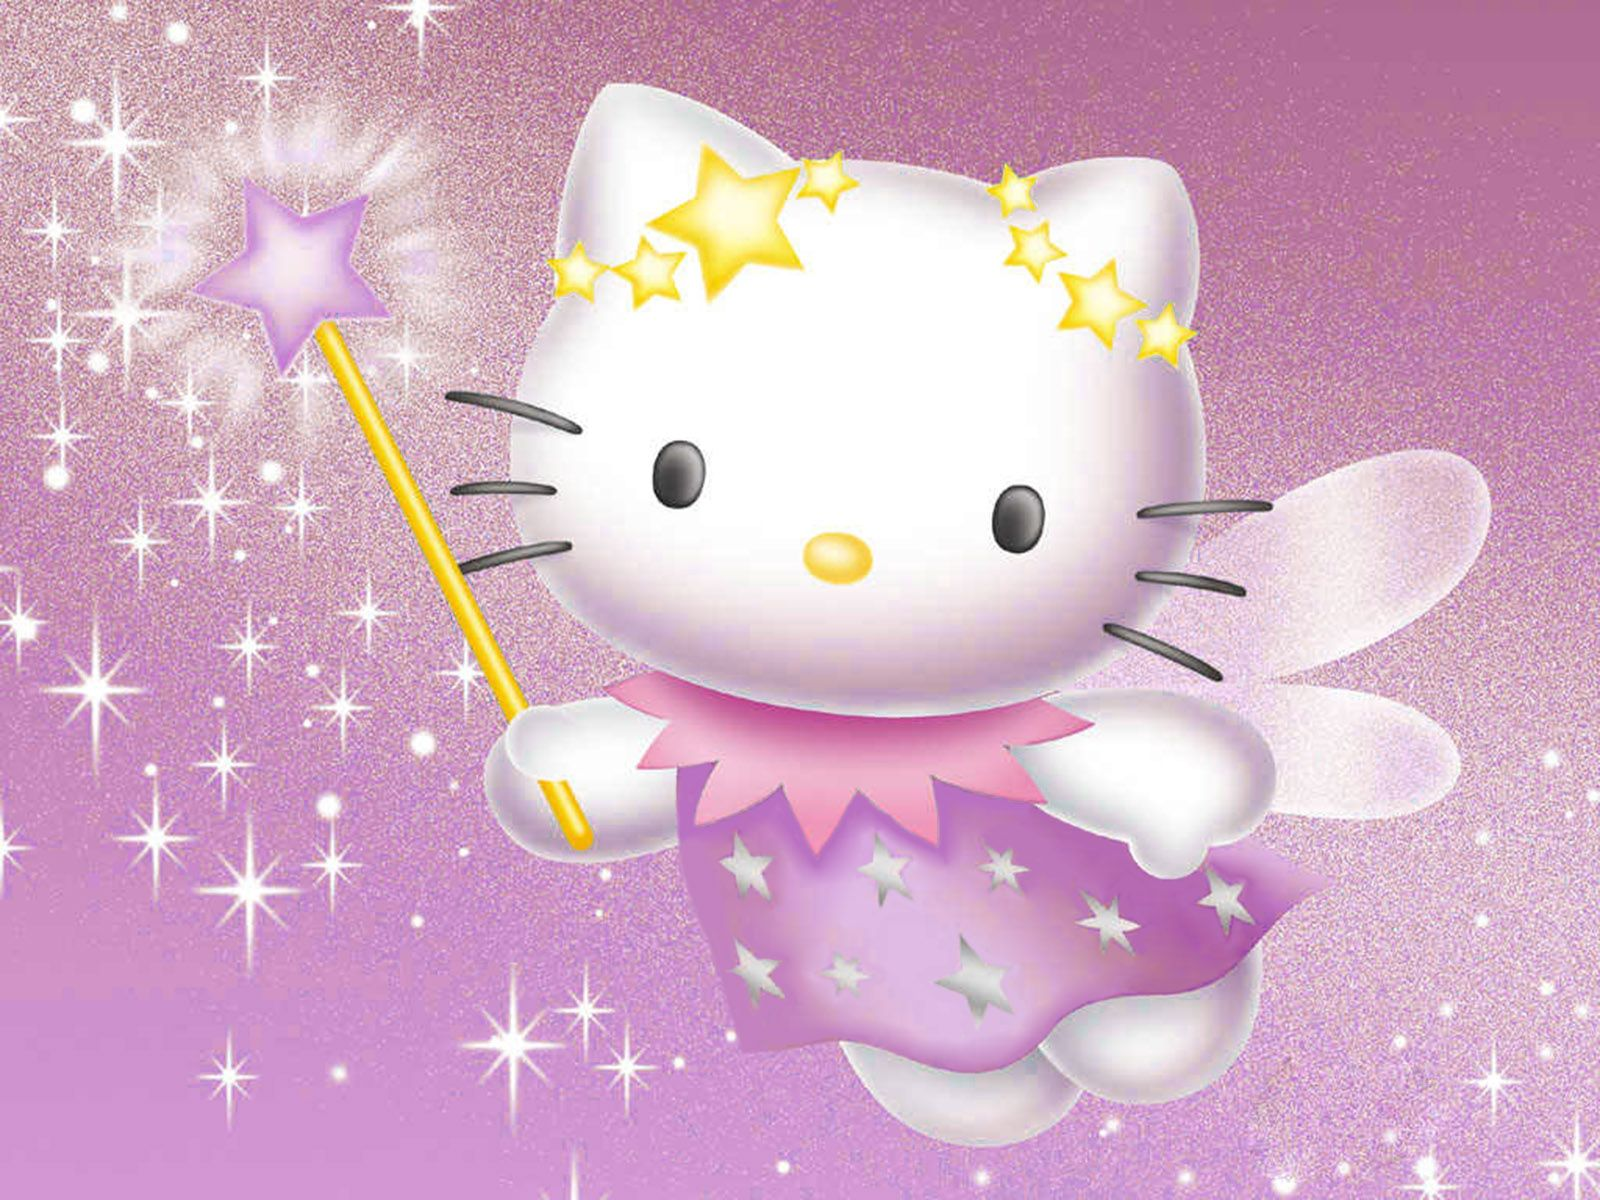 Download cartoons hello kitty free high quality pictures wallpaper download cartoons hello kitty free high quality pictures wallpaper voltagebd Gallery